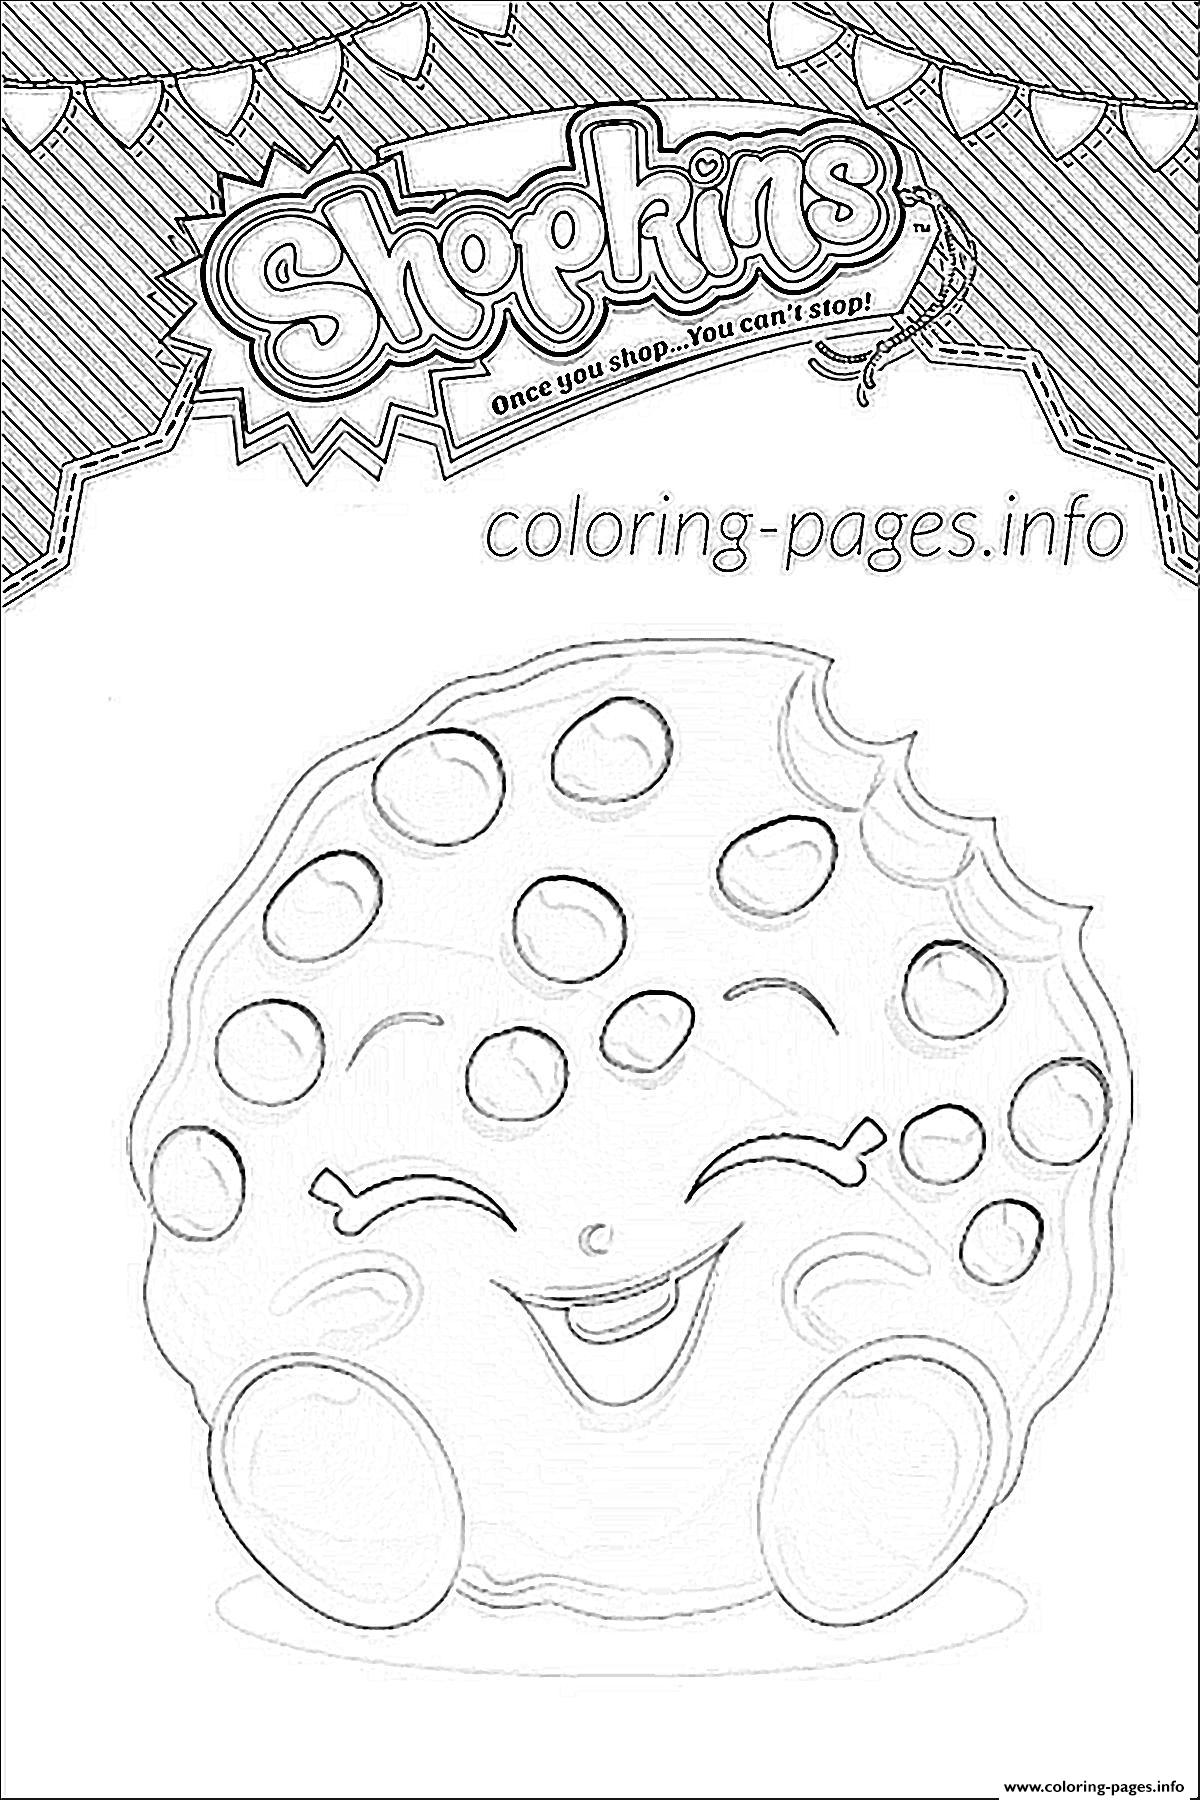 Shopkins Kooky Cookie Shoppies Coloring Pages